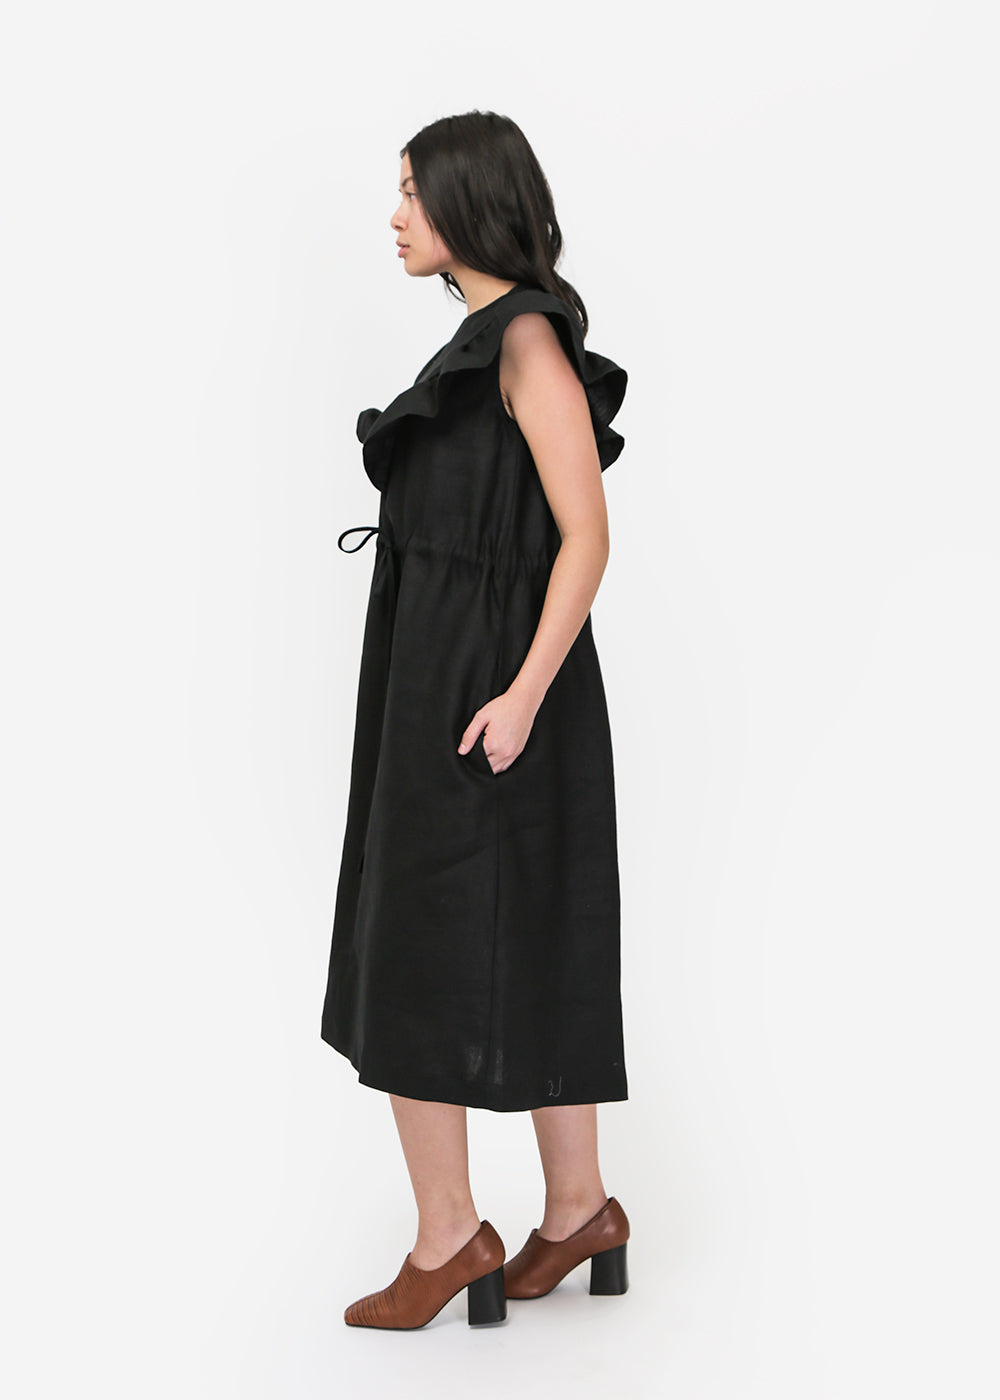 Eliza Faulkner Prairie Dress — Shop sustainable fashion and slow fashion at New Classics Studios